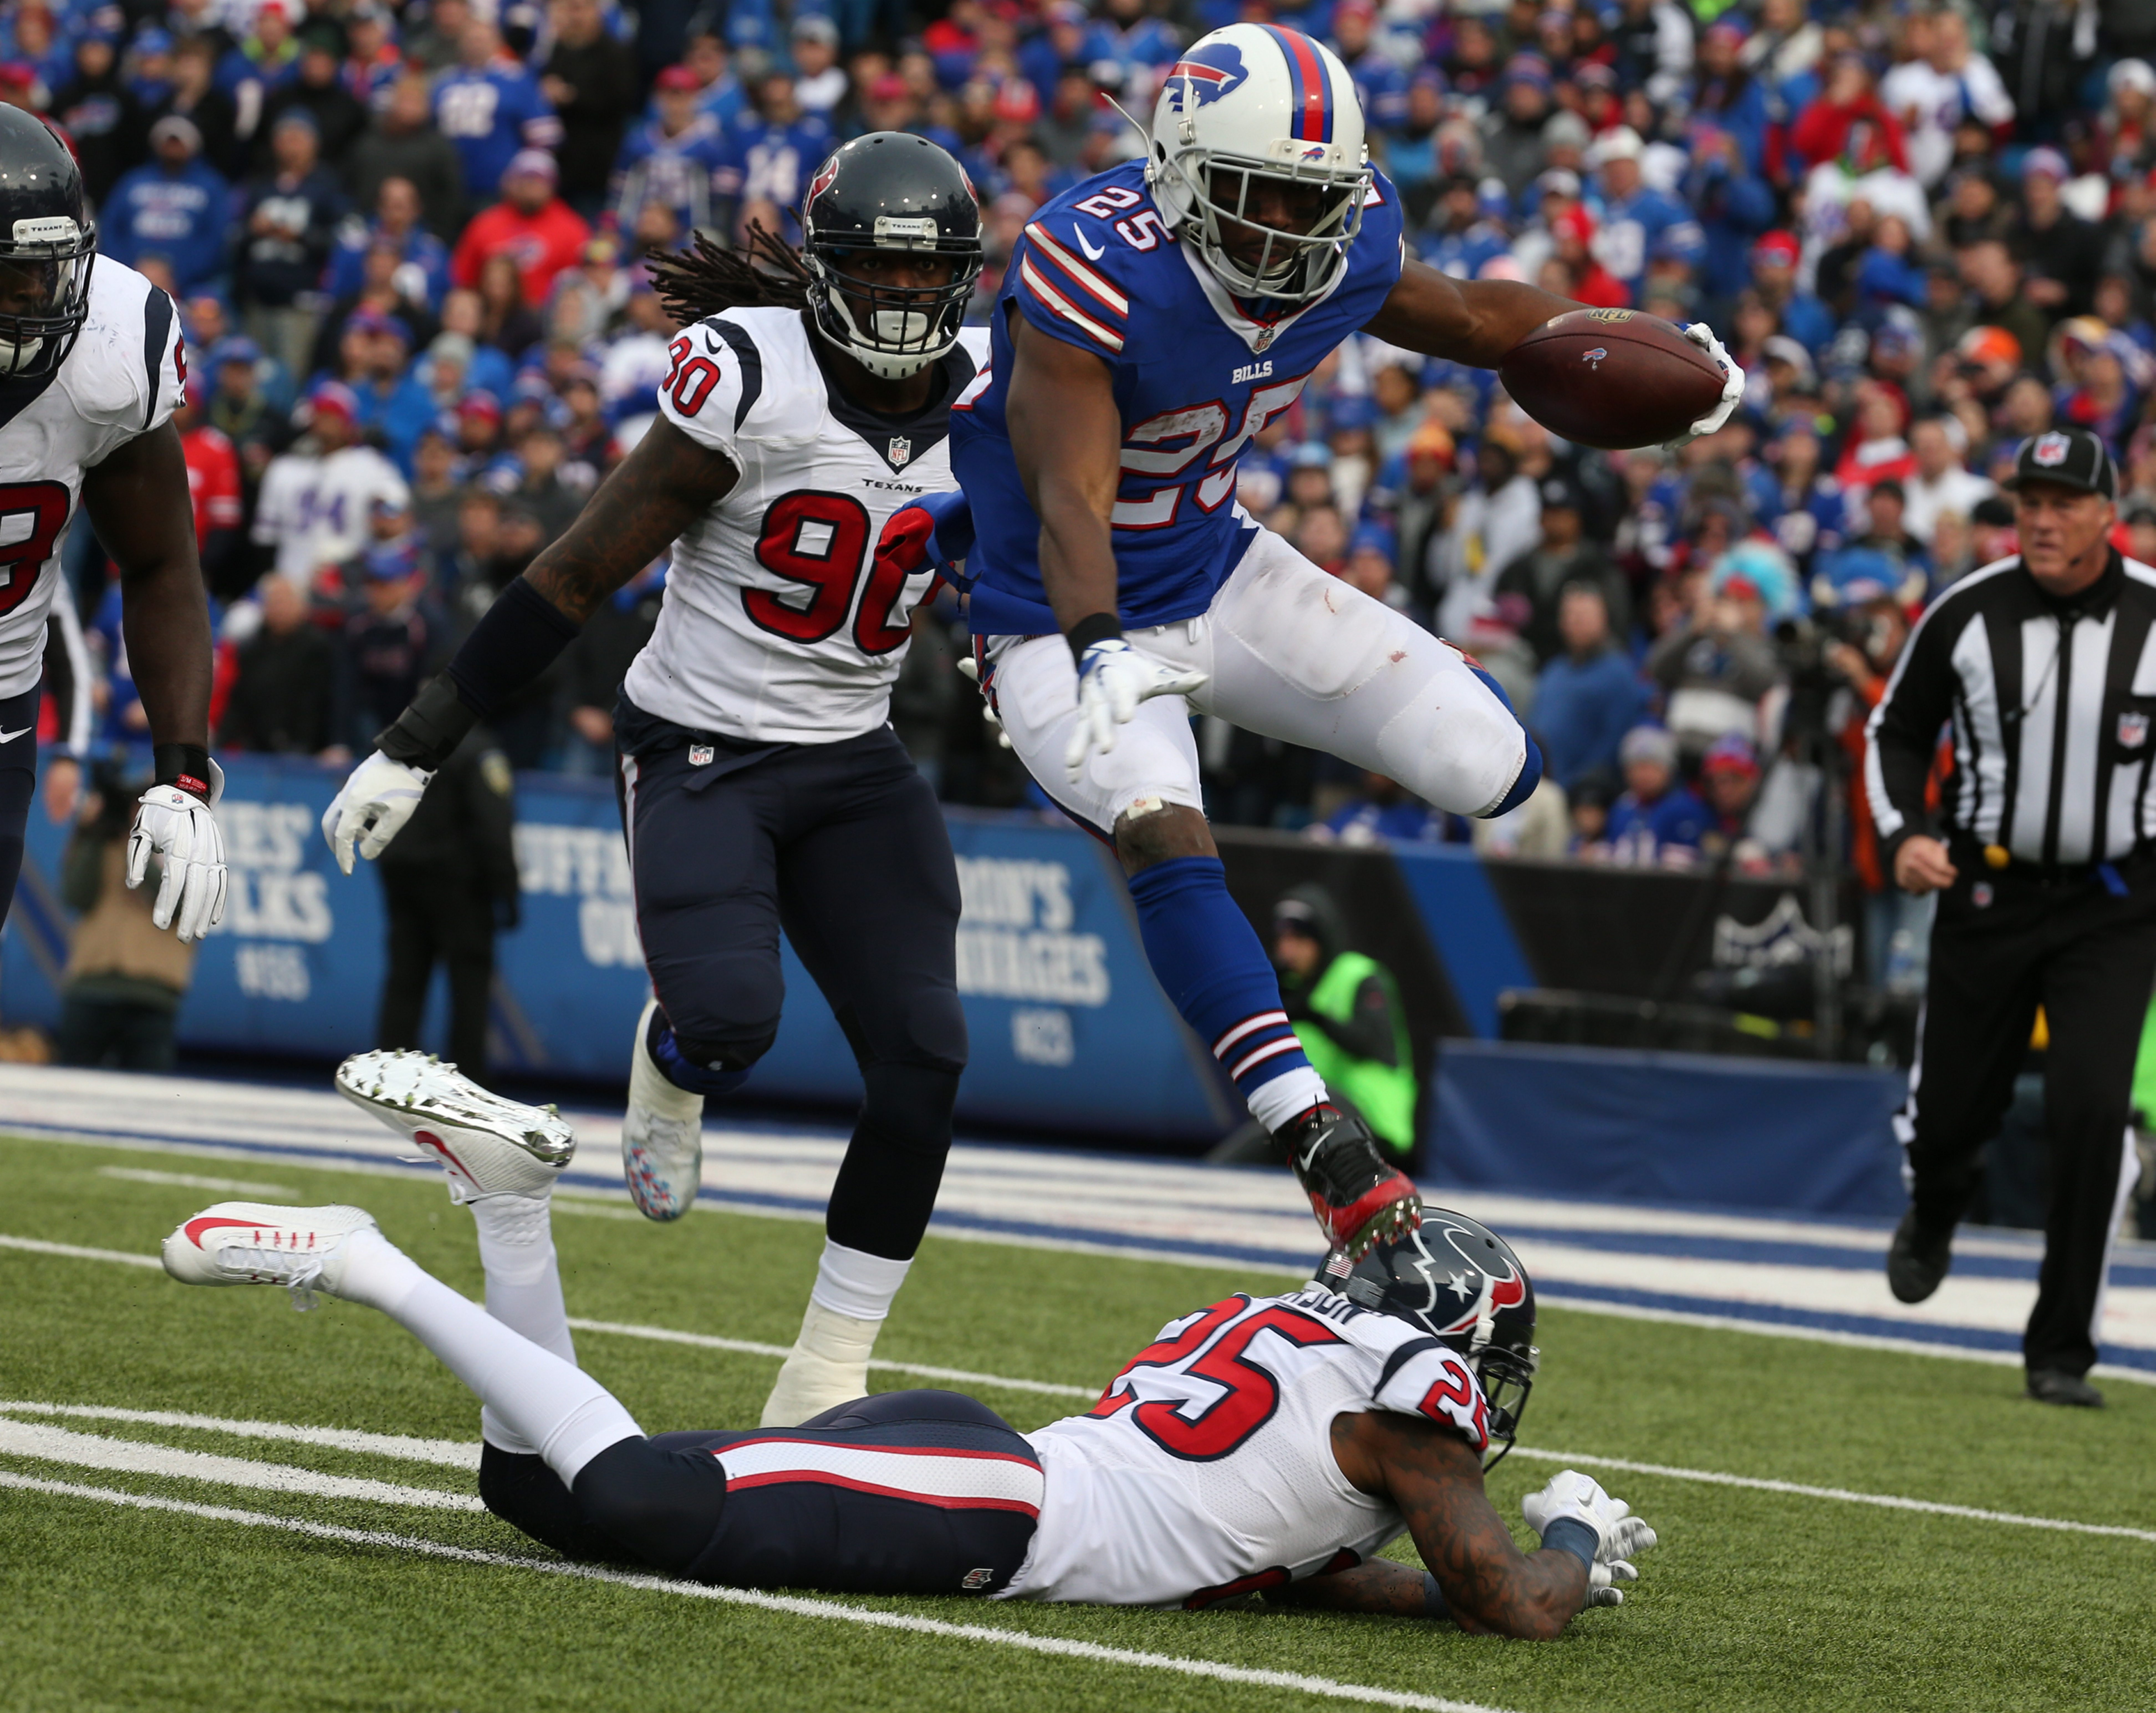 Running back LeSean McCoy is one of the reasons the Bills' rushing attack took a big leap forward in 2015. (James P. McCoy/ Buffalo News)